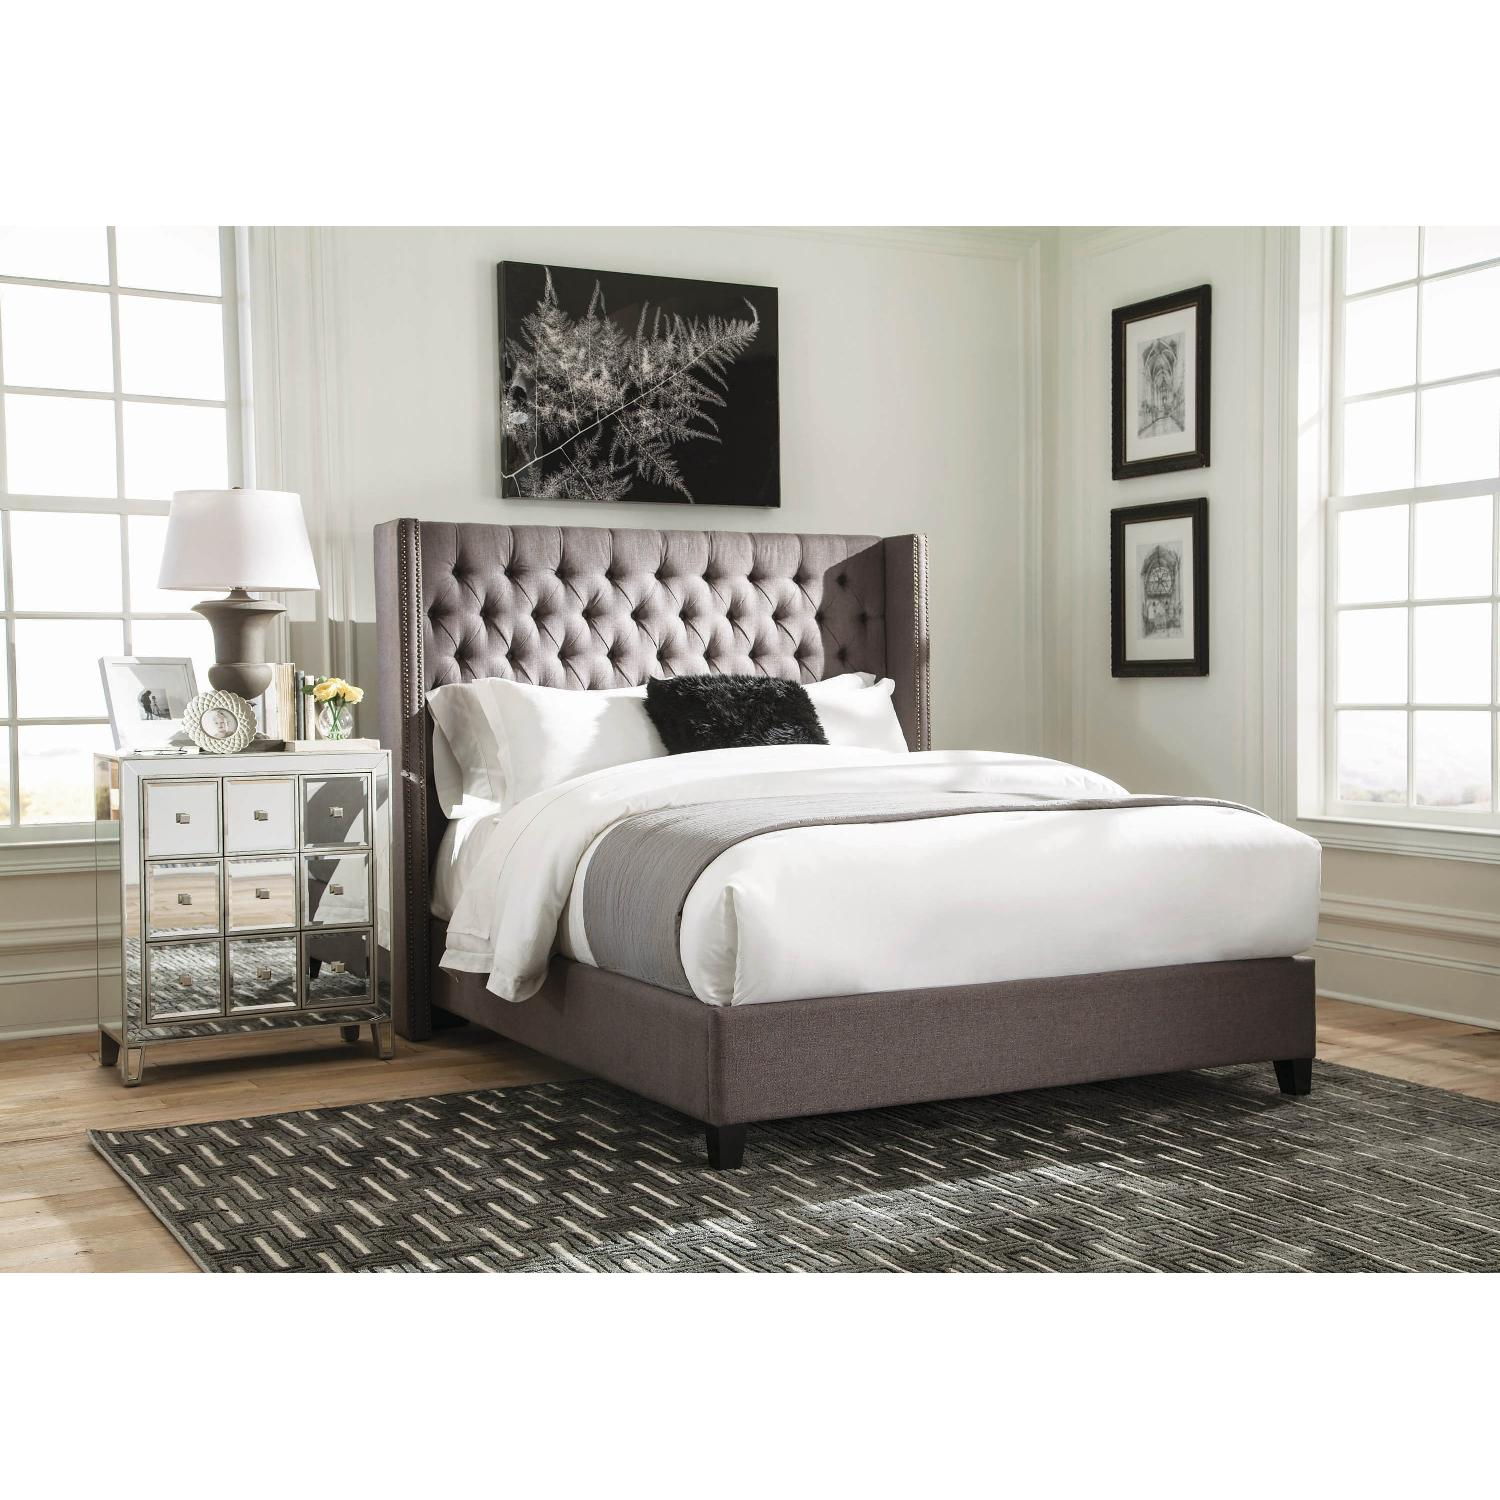 Modern Demi Wing Full Bed in Grey w/ Nailhead Accent - image-3